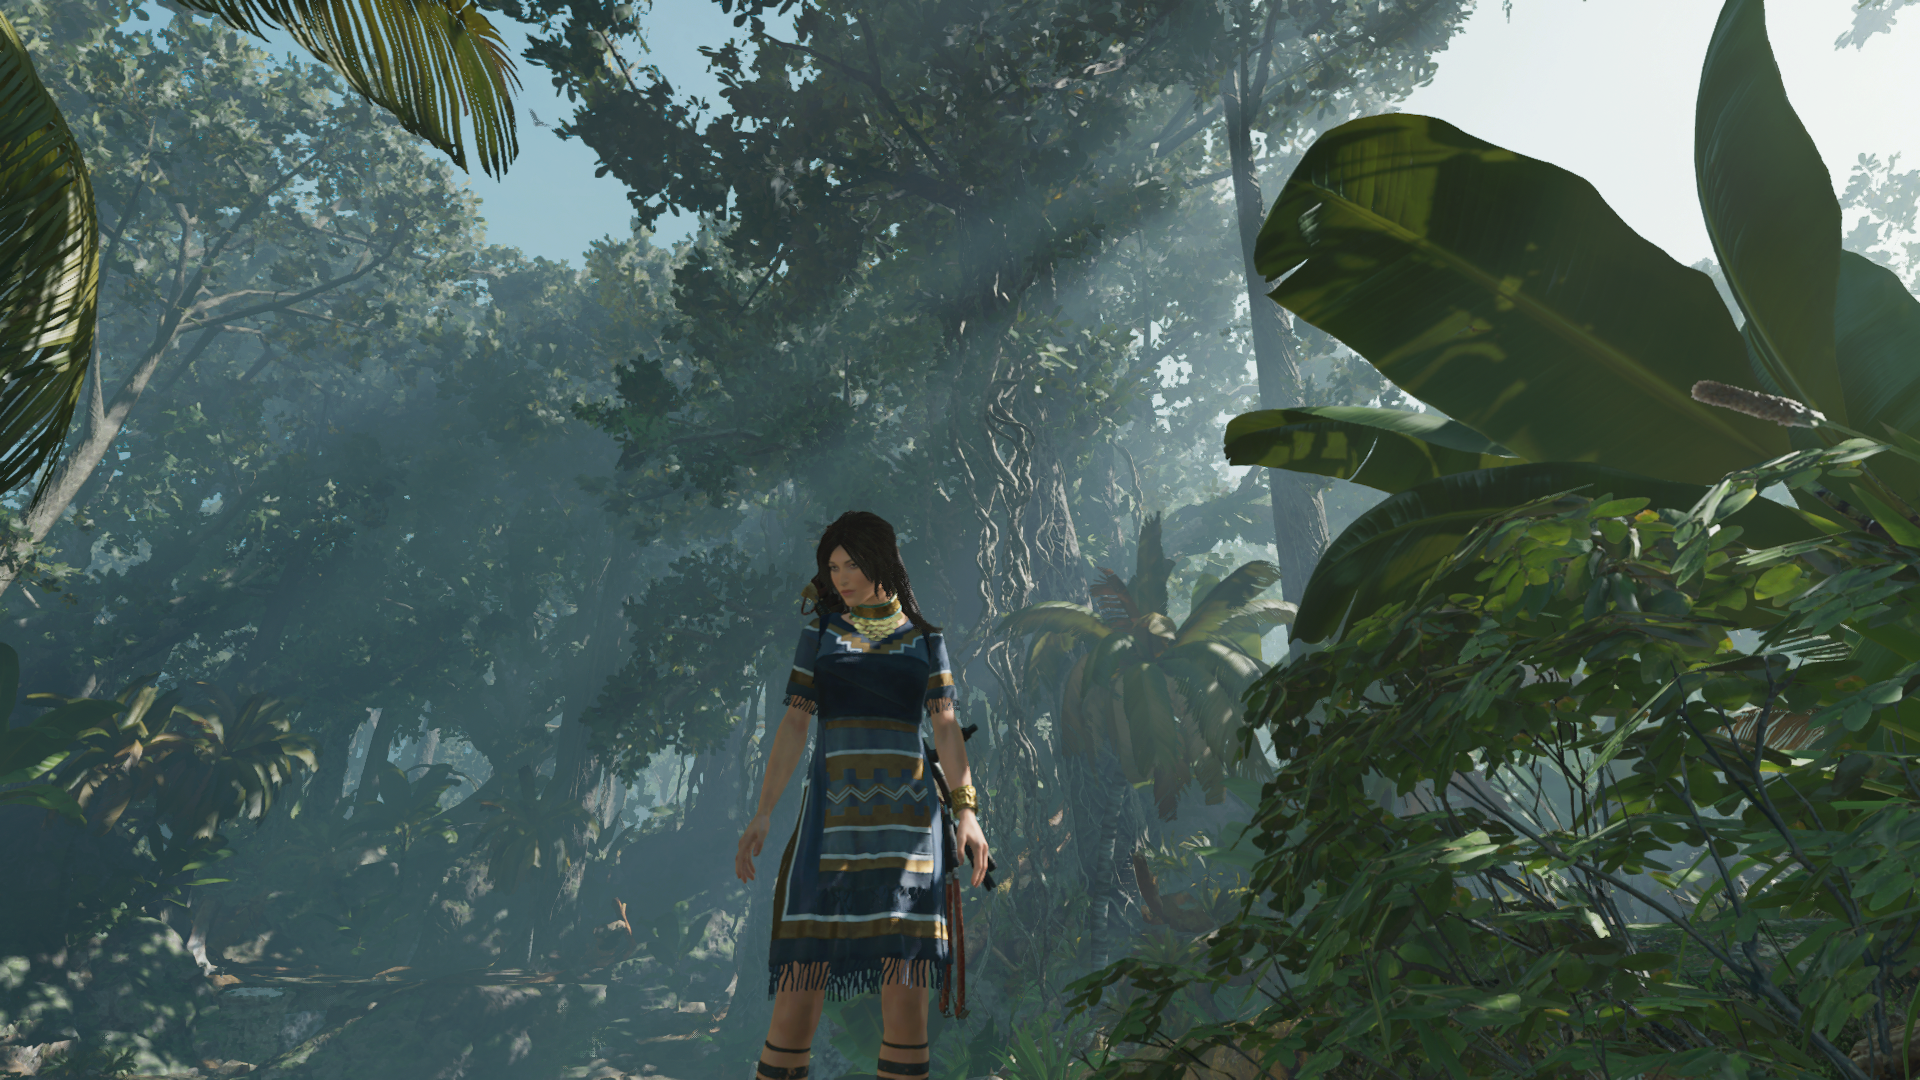 Shadow of the Tomb Raider v1.0 build 237.6_64 13.01.2019 1_11_25.png - Shadow of the Tomb Raider Лара Крофт